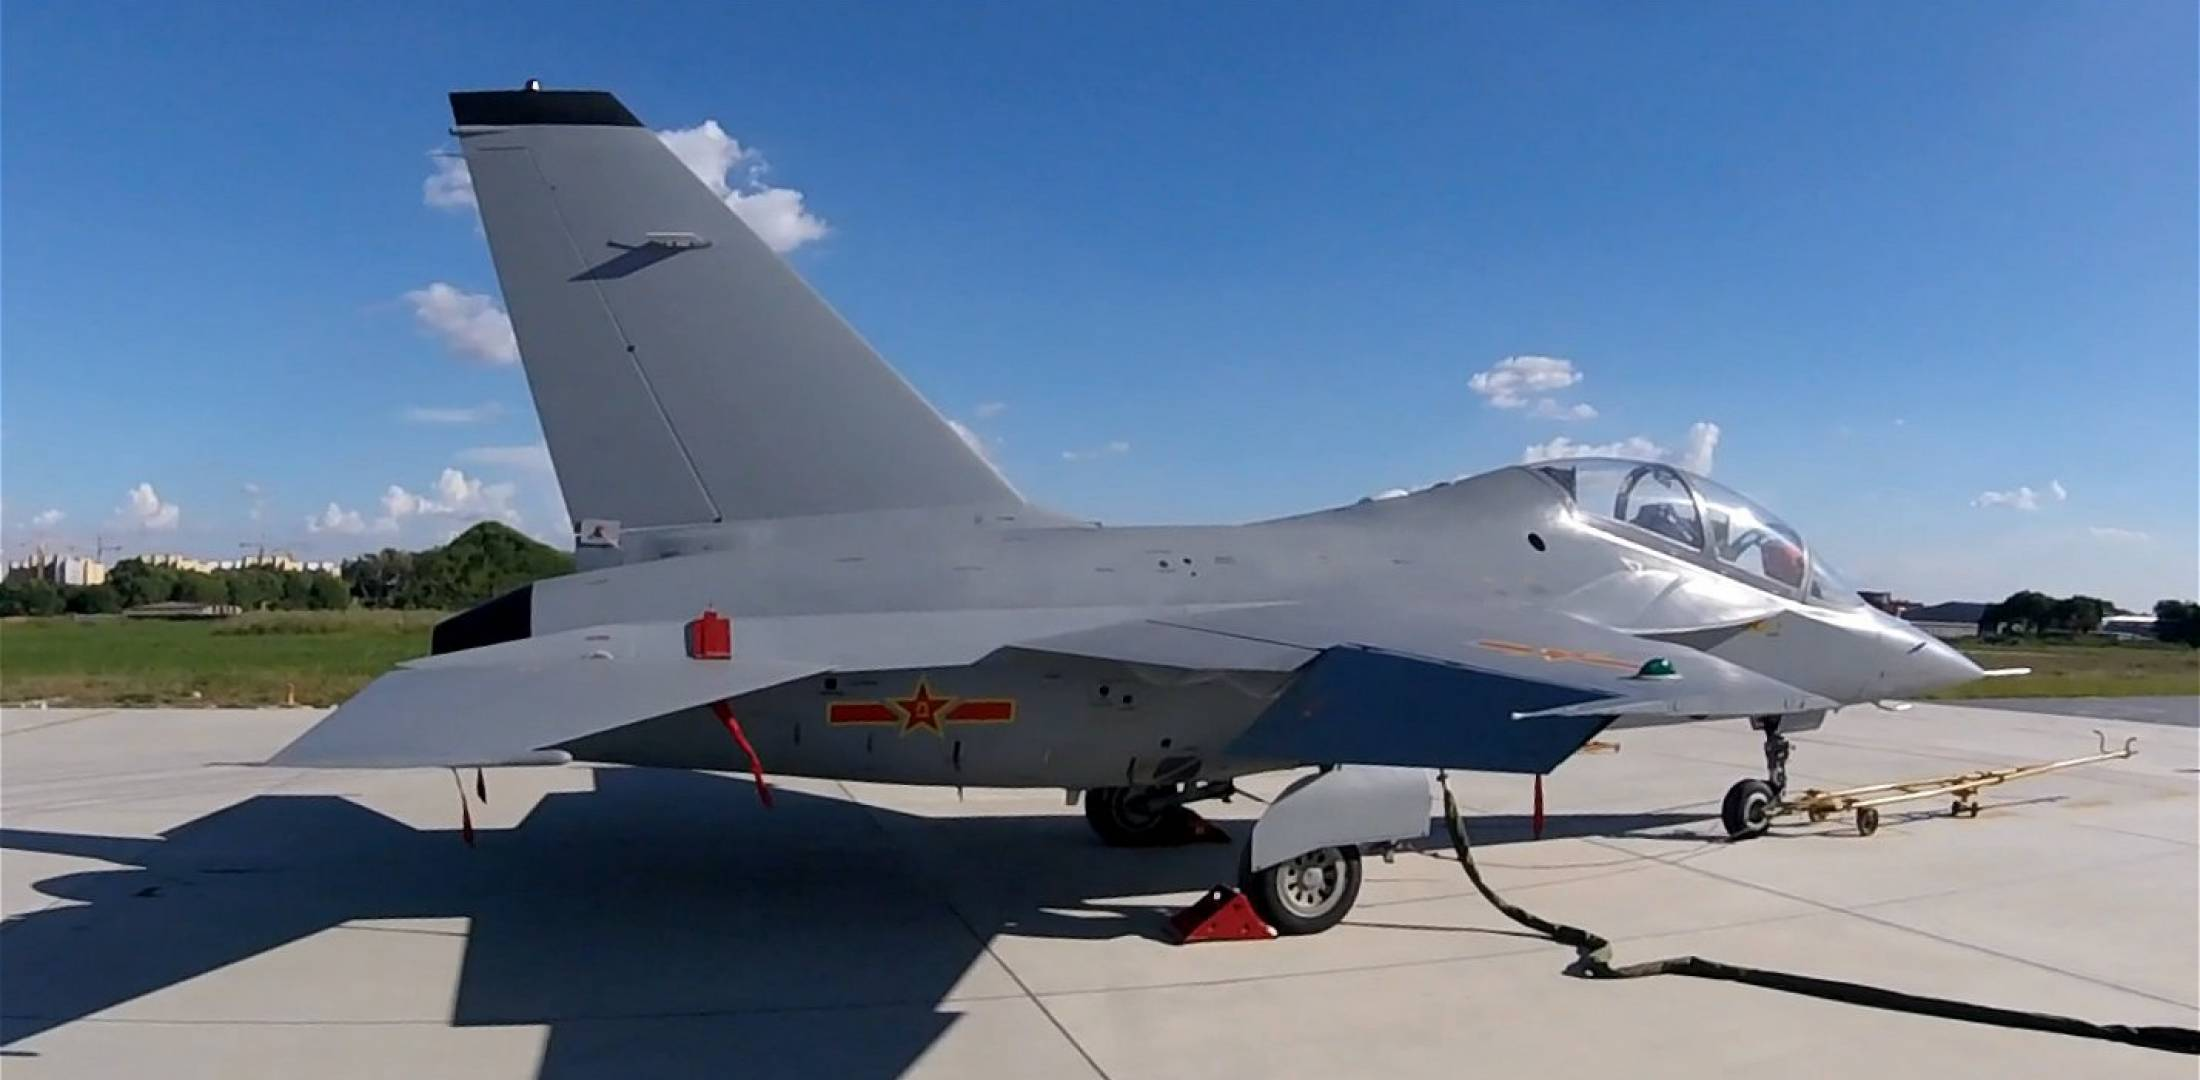 China's Air Force Apparently Receives First L-15 Jet Trainer